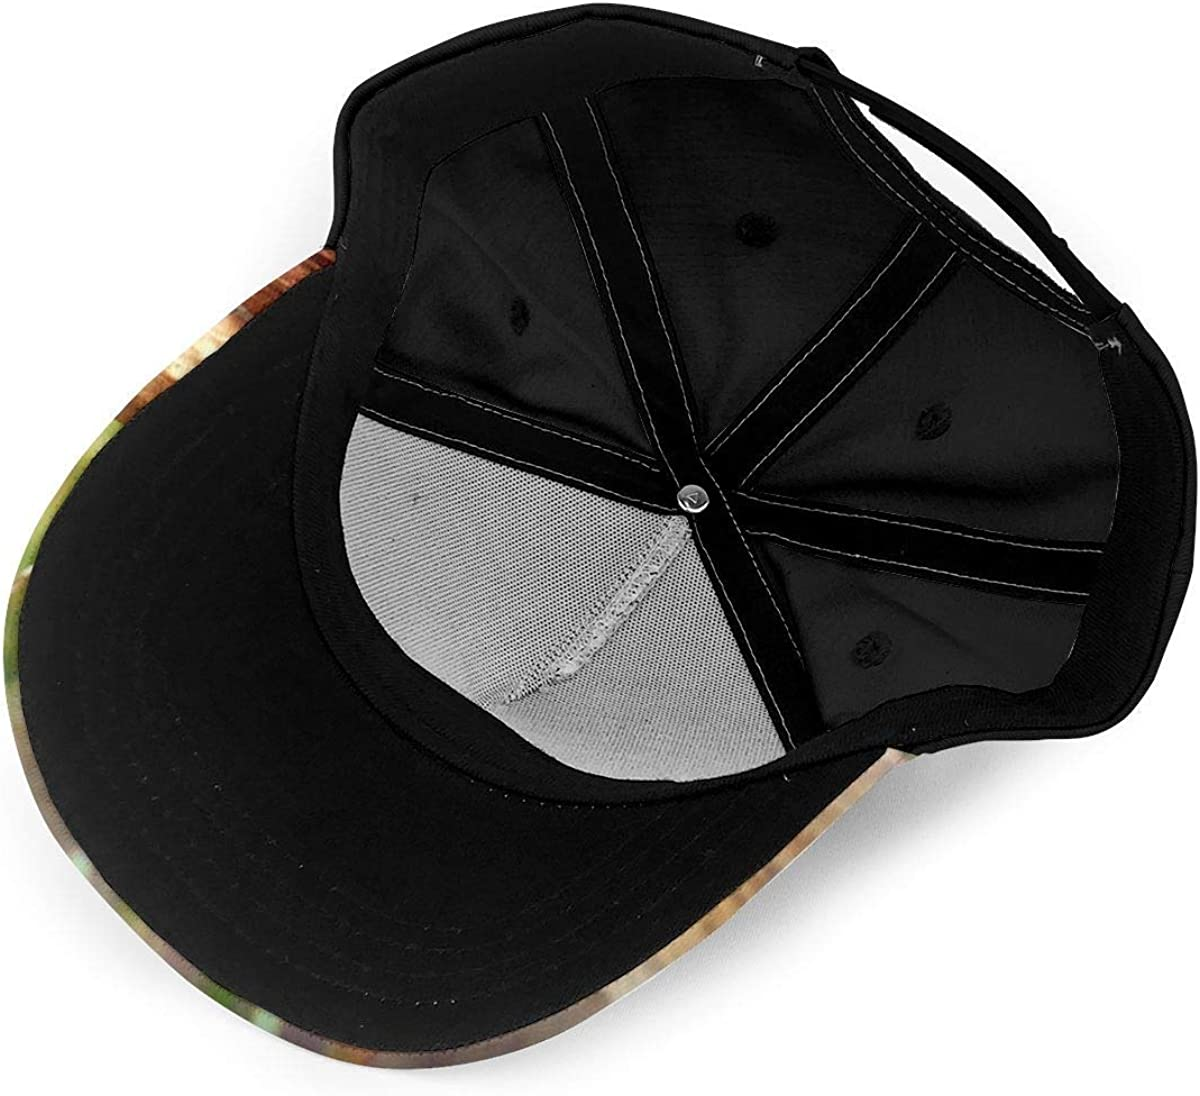 Squirrel Cut The Nut Lightweight Unisex Baseball Caps Adjustable Breathable Sun Hat for Sport Outdoor Black